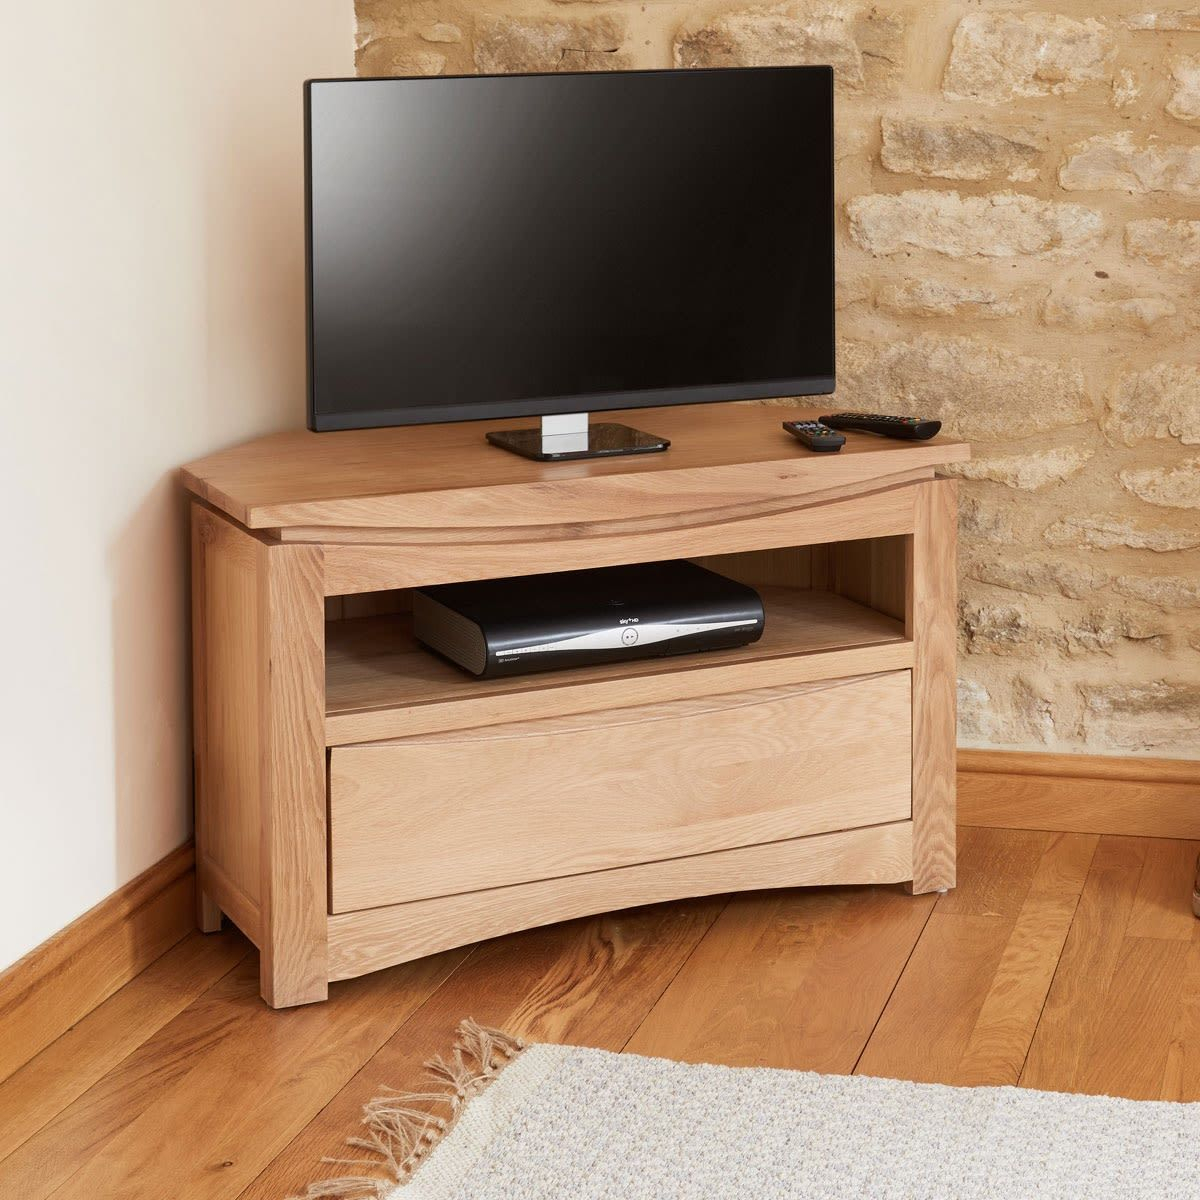 Roscoe Contemporary Oak Corner Television Cabinet | Wooden For Wooden Tv Stand Corner Units (View 1 of 15)